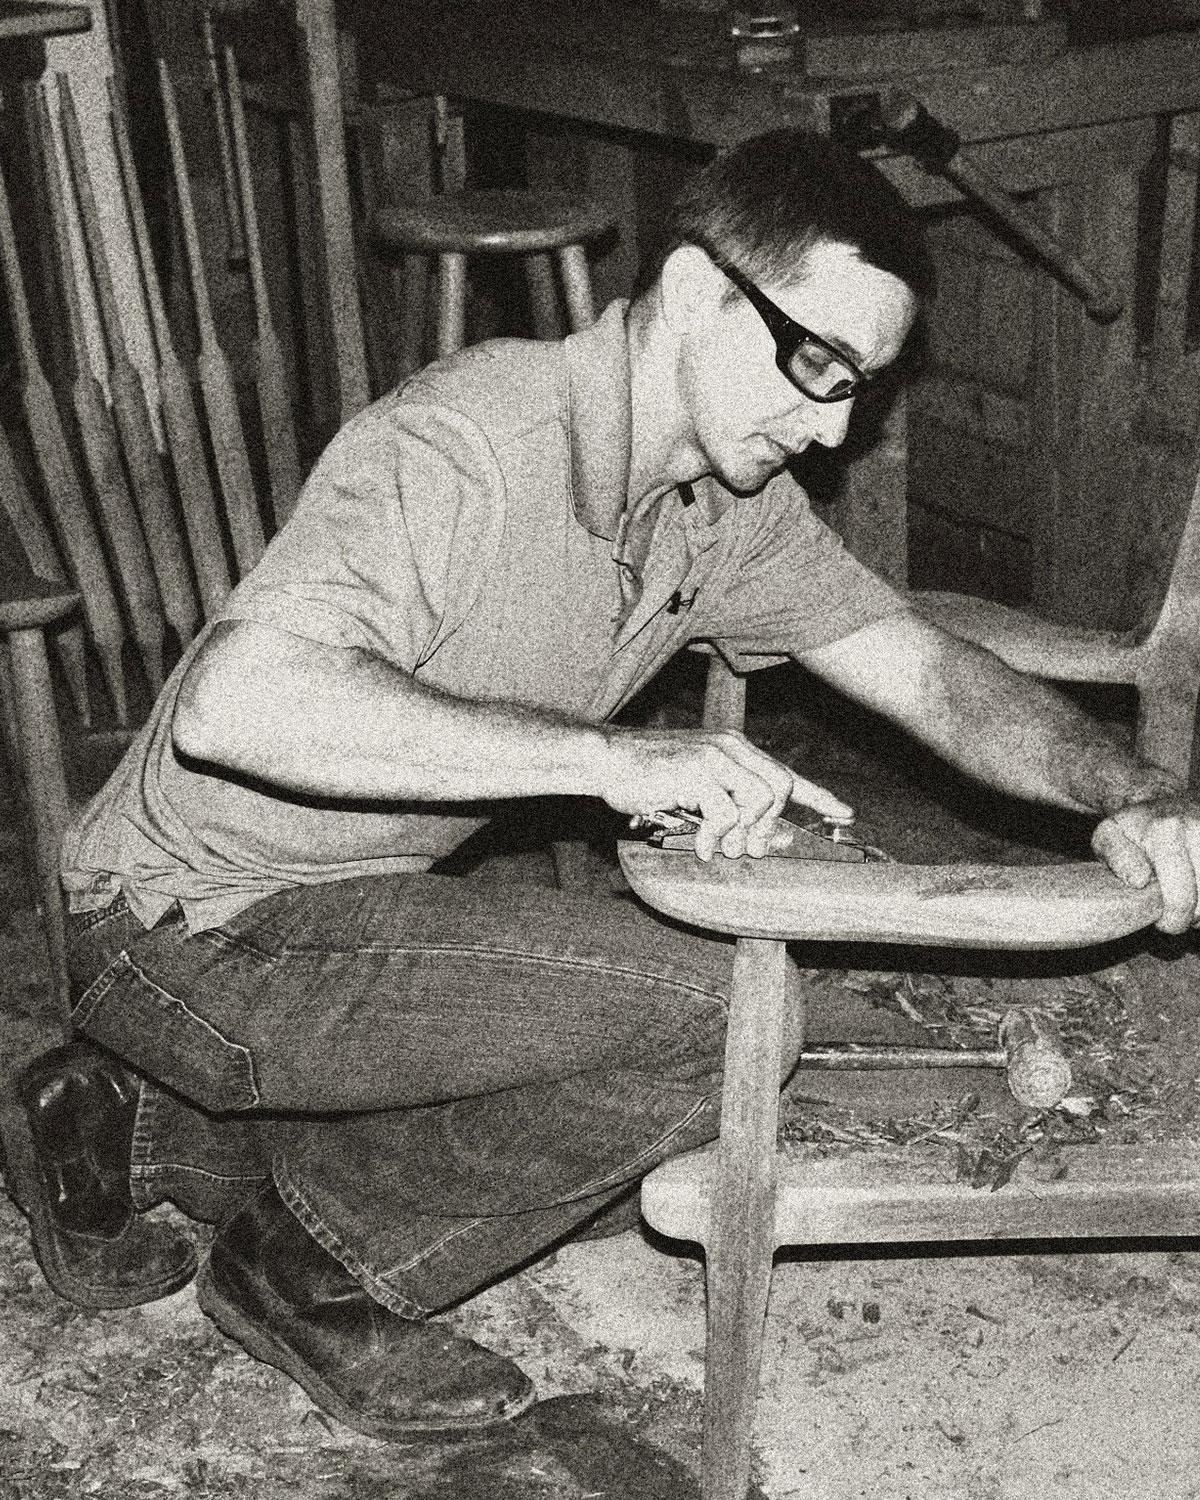 Photo: WVFPC artisan Phil Knuckles working on a wooden chair